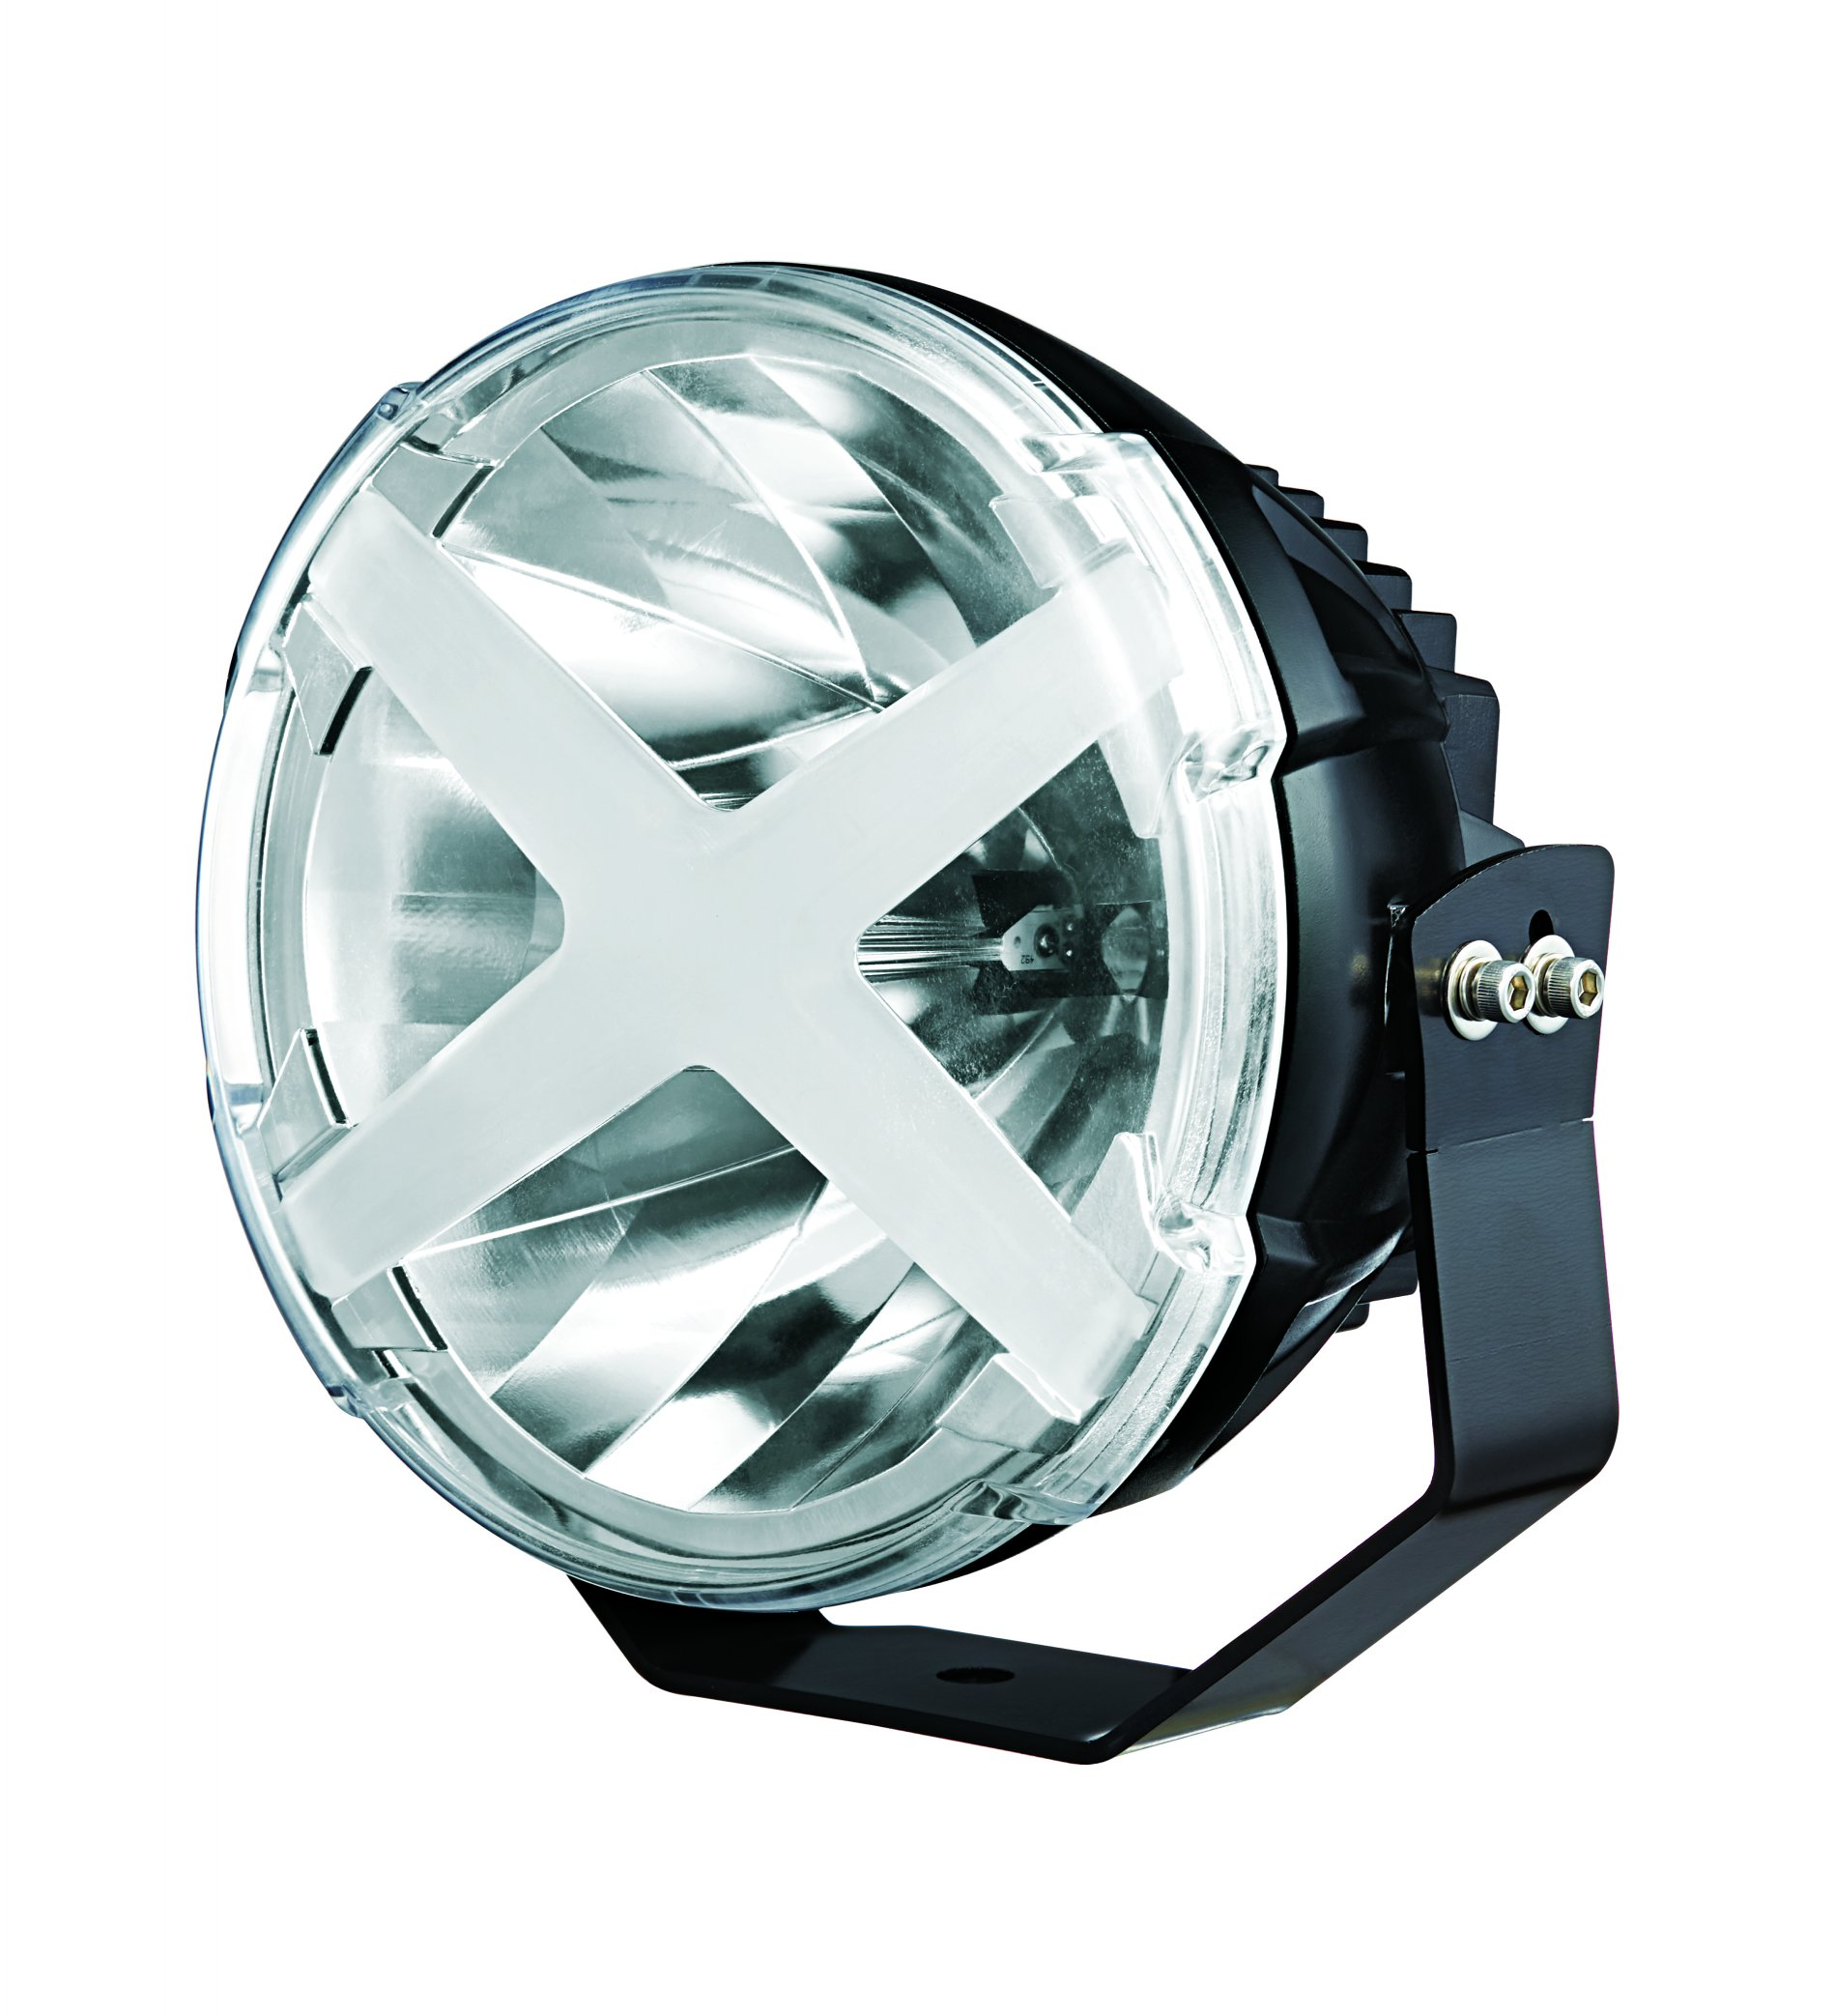 Agricultural / Tractor LED Driving Lamp for Lighting Series made by NIKEN Vehicle Lighting Co., LTD. 首通股份有限公司 - MatchSupplier.com